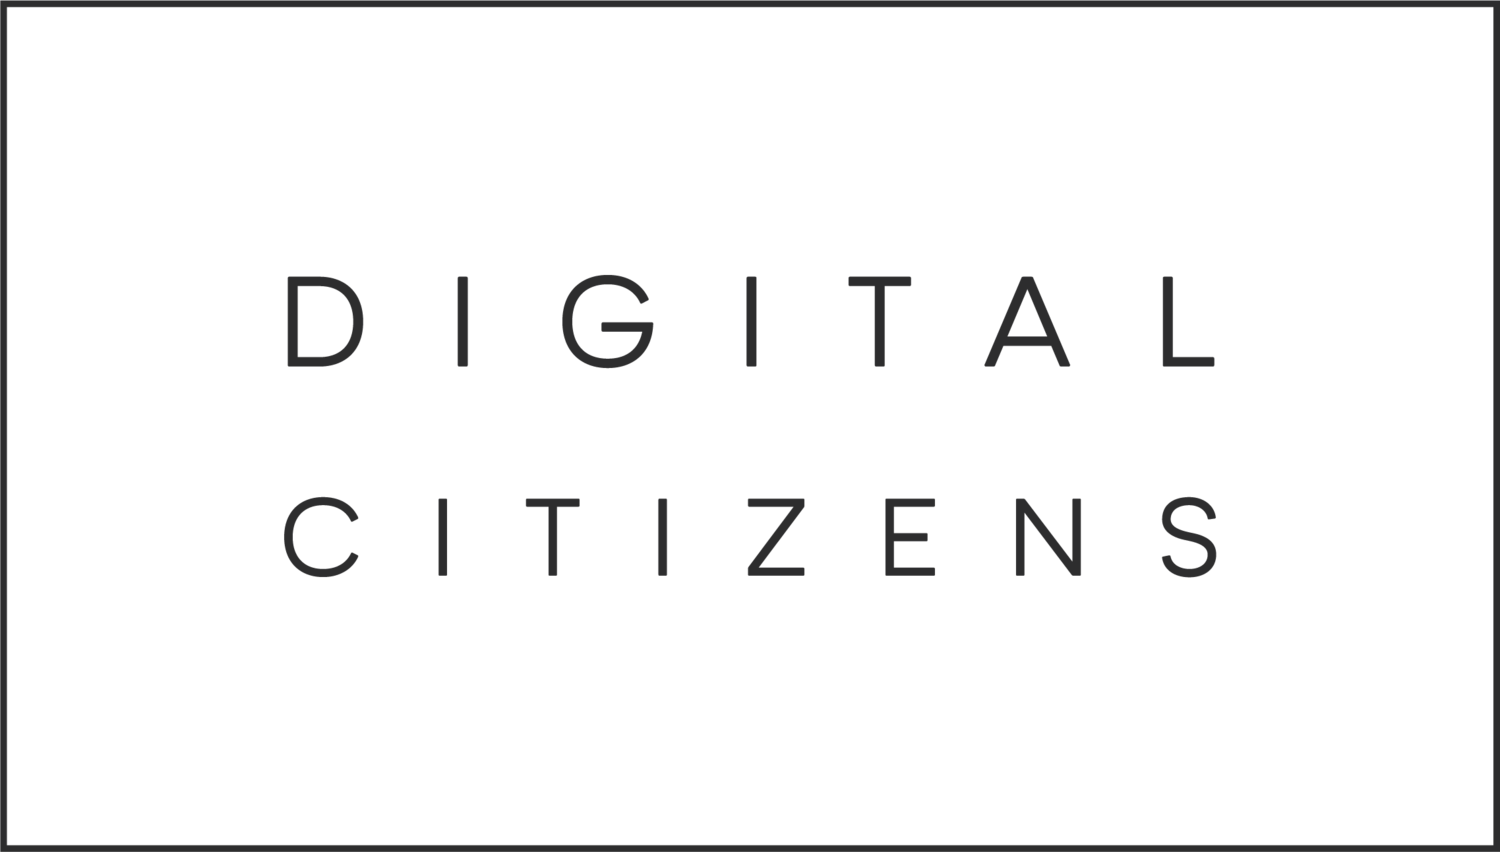 DIGITAL CITIZENS